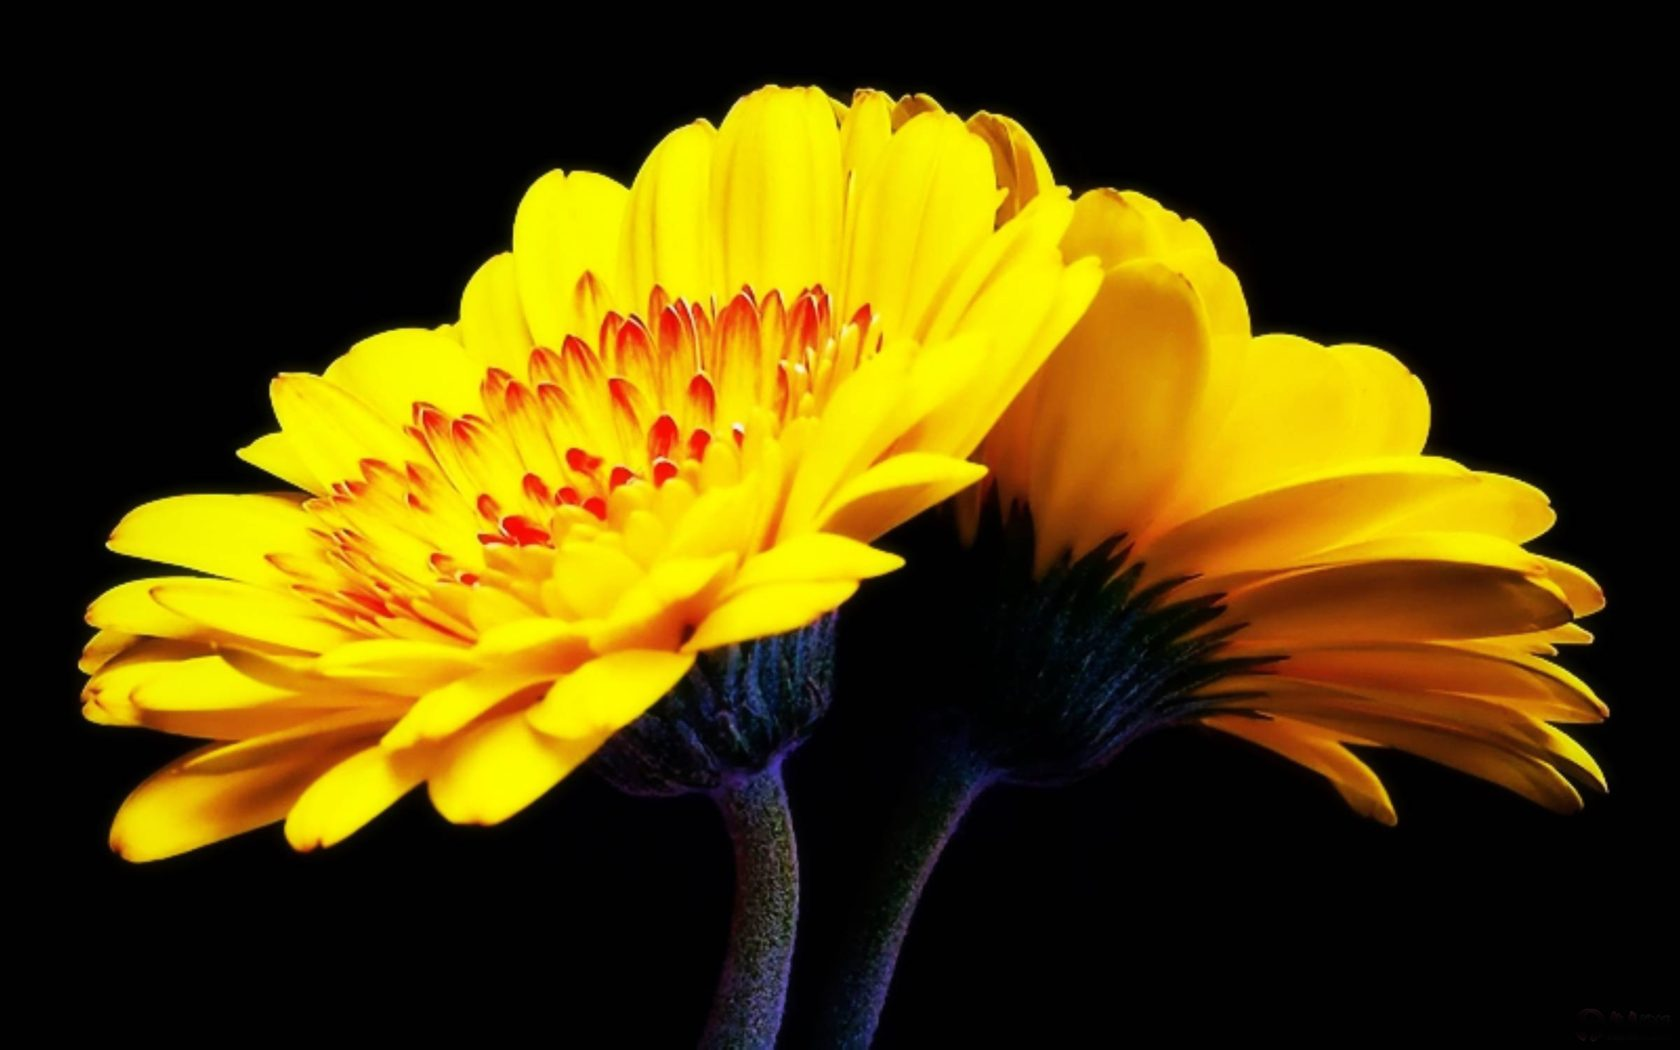 3d Wallpapers For Pc 1920x1080 Free Download Yellow Gerbera Flower Wallpaper Pc Wallpapers13 Com